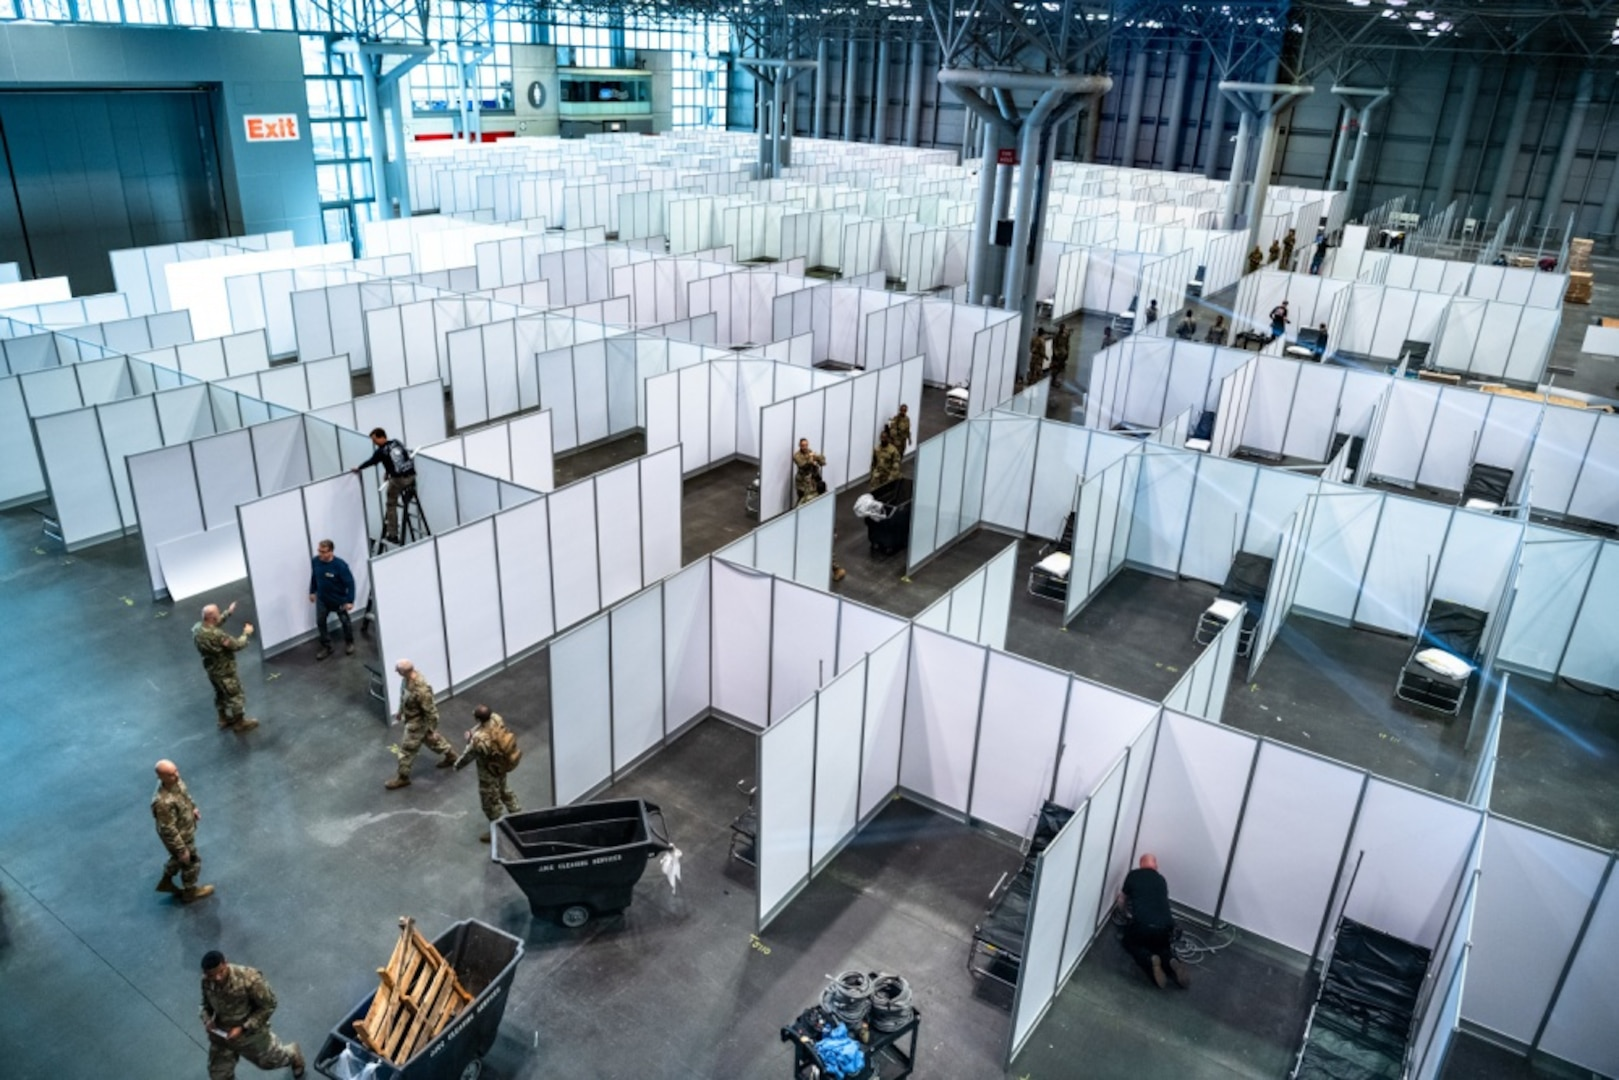 FEMA is working with HHS and the state of New York to complete construction of a 1,000-bed medical station at the Jacob K. Javits Convention Center in New York City.